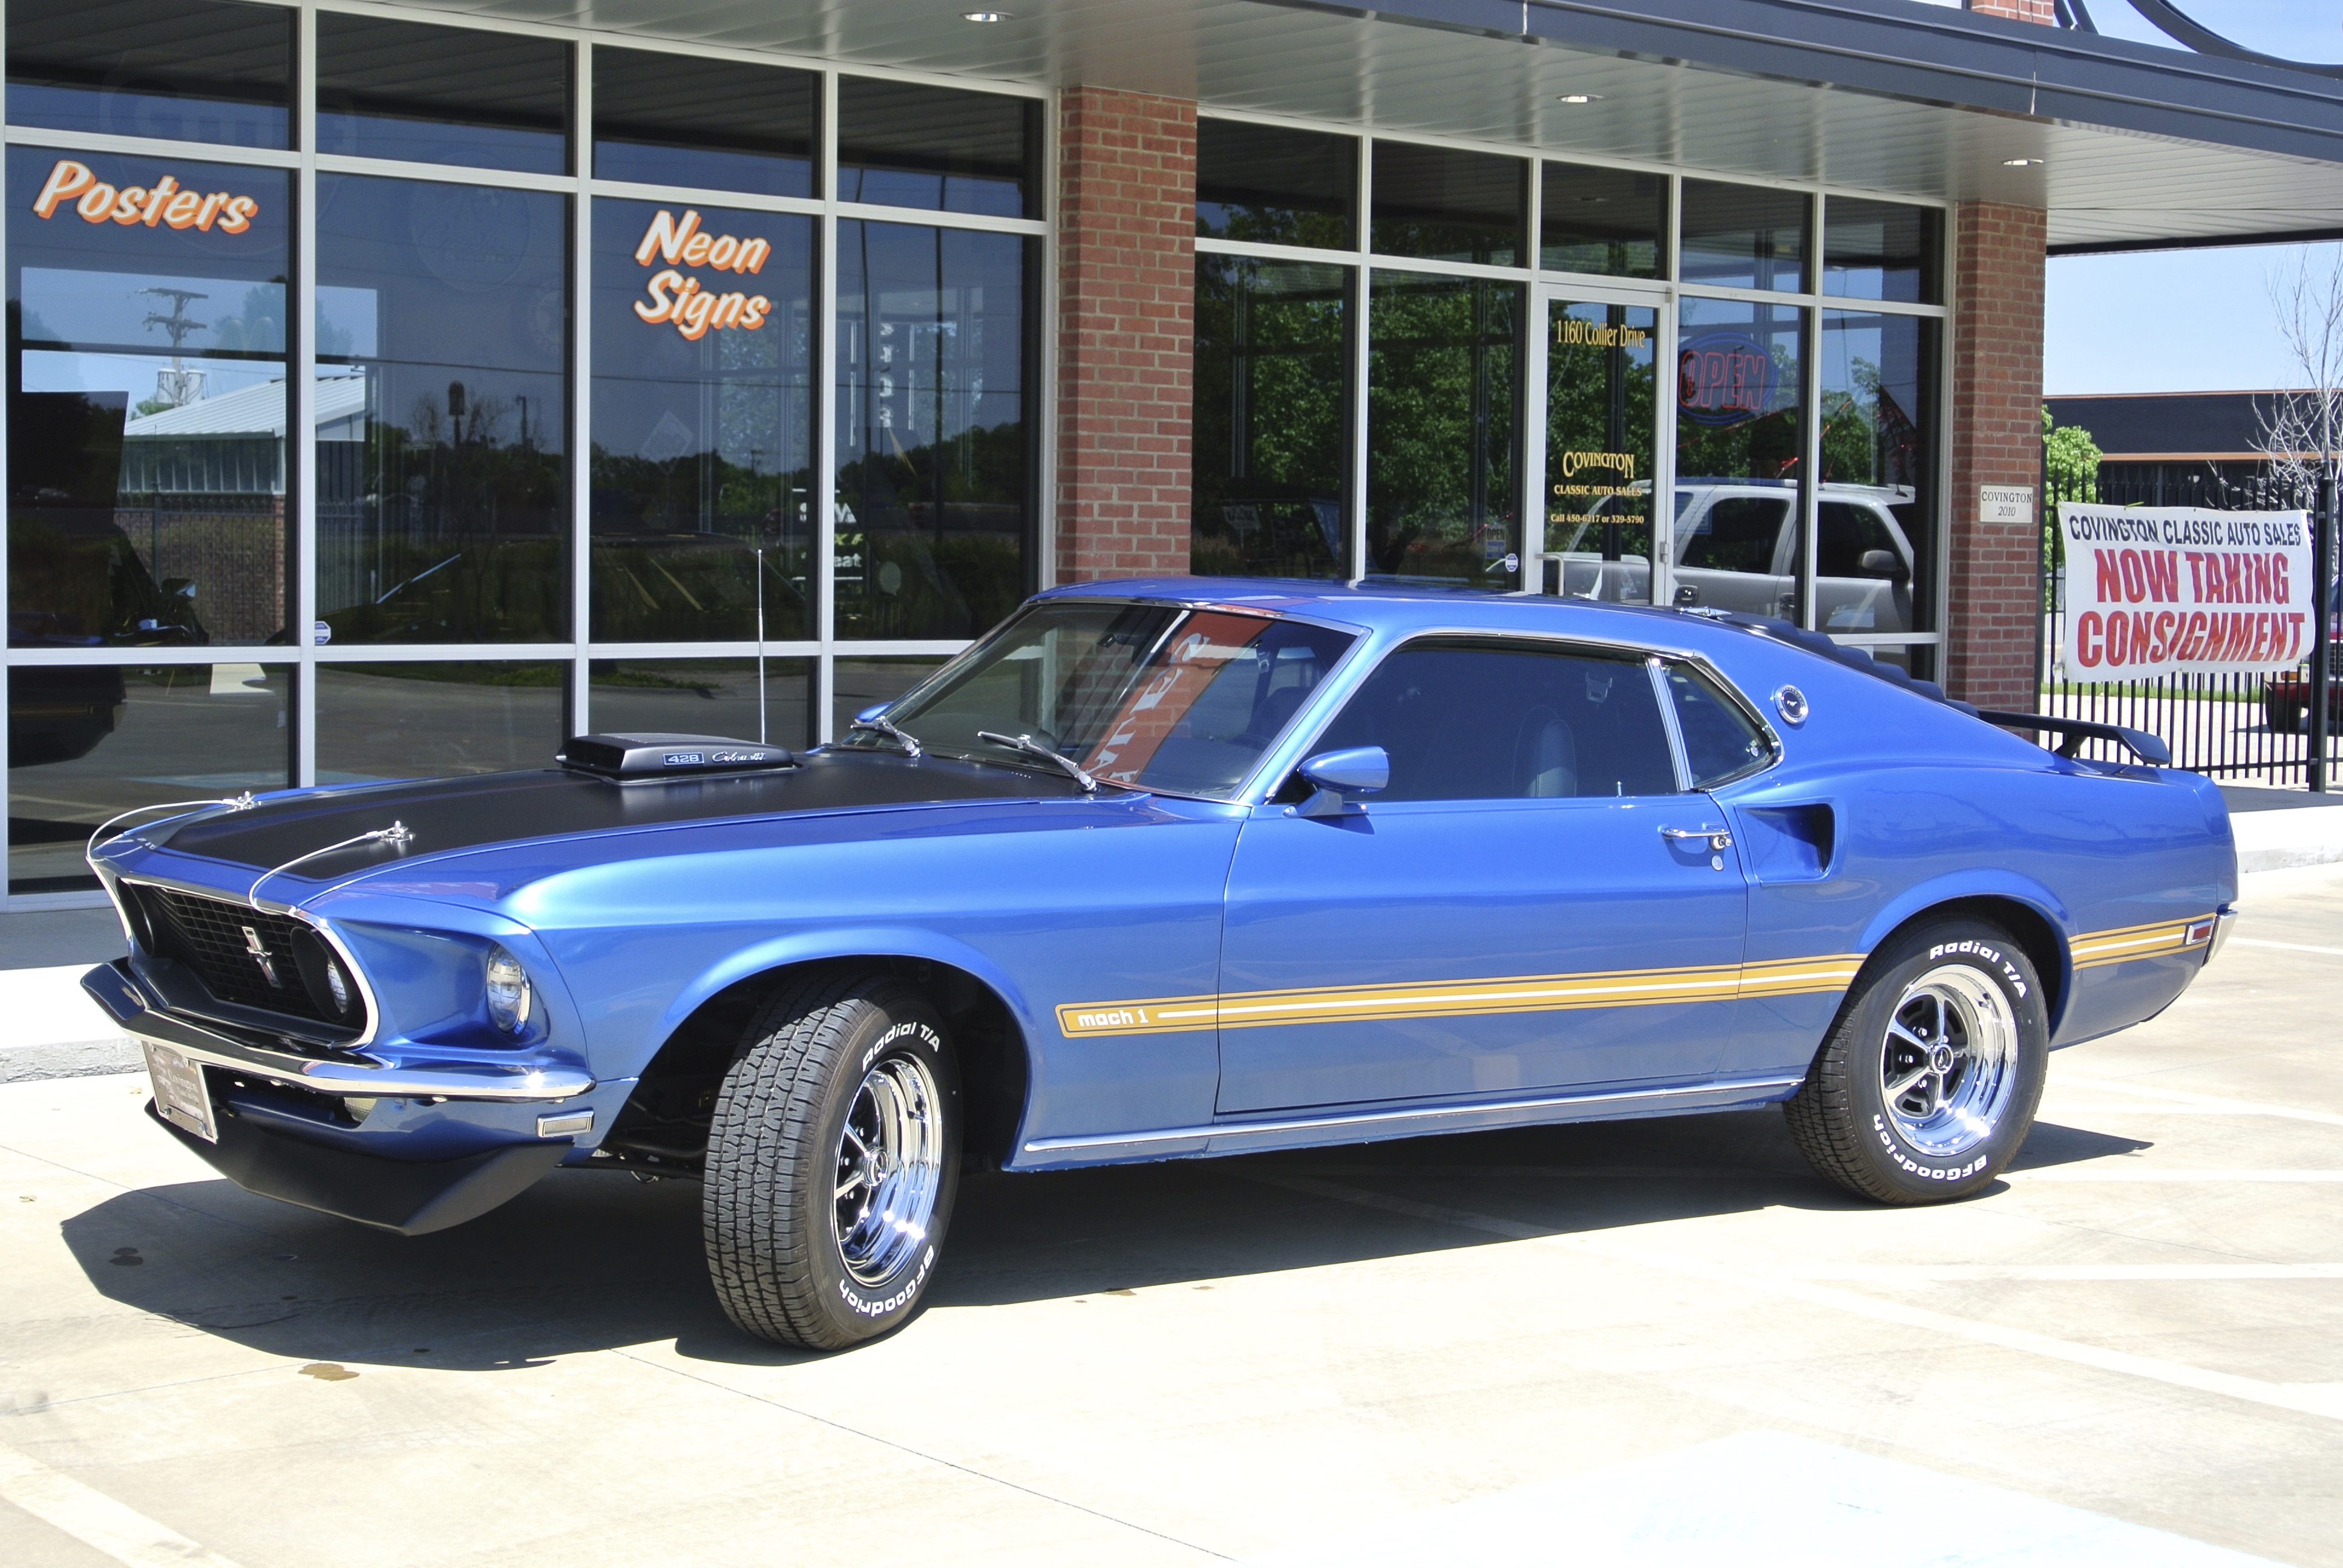 1969 Ford Mustang Mach 1 4k Ultra Hd Wallpaper Background Image Fastback Muscle Car Wallpapers Id932436